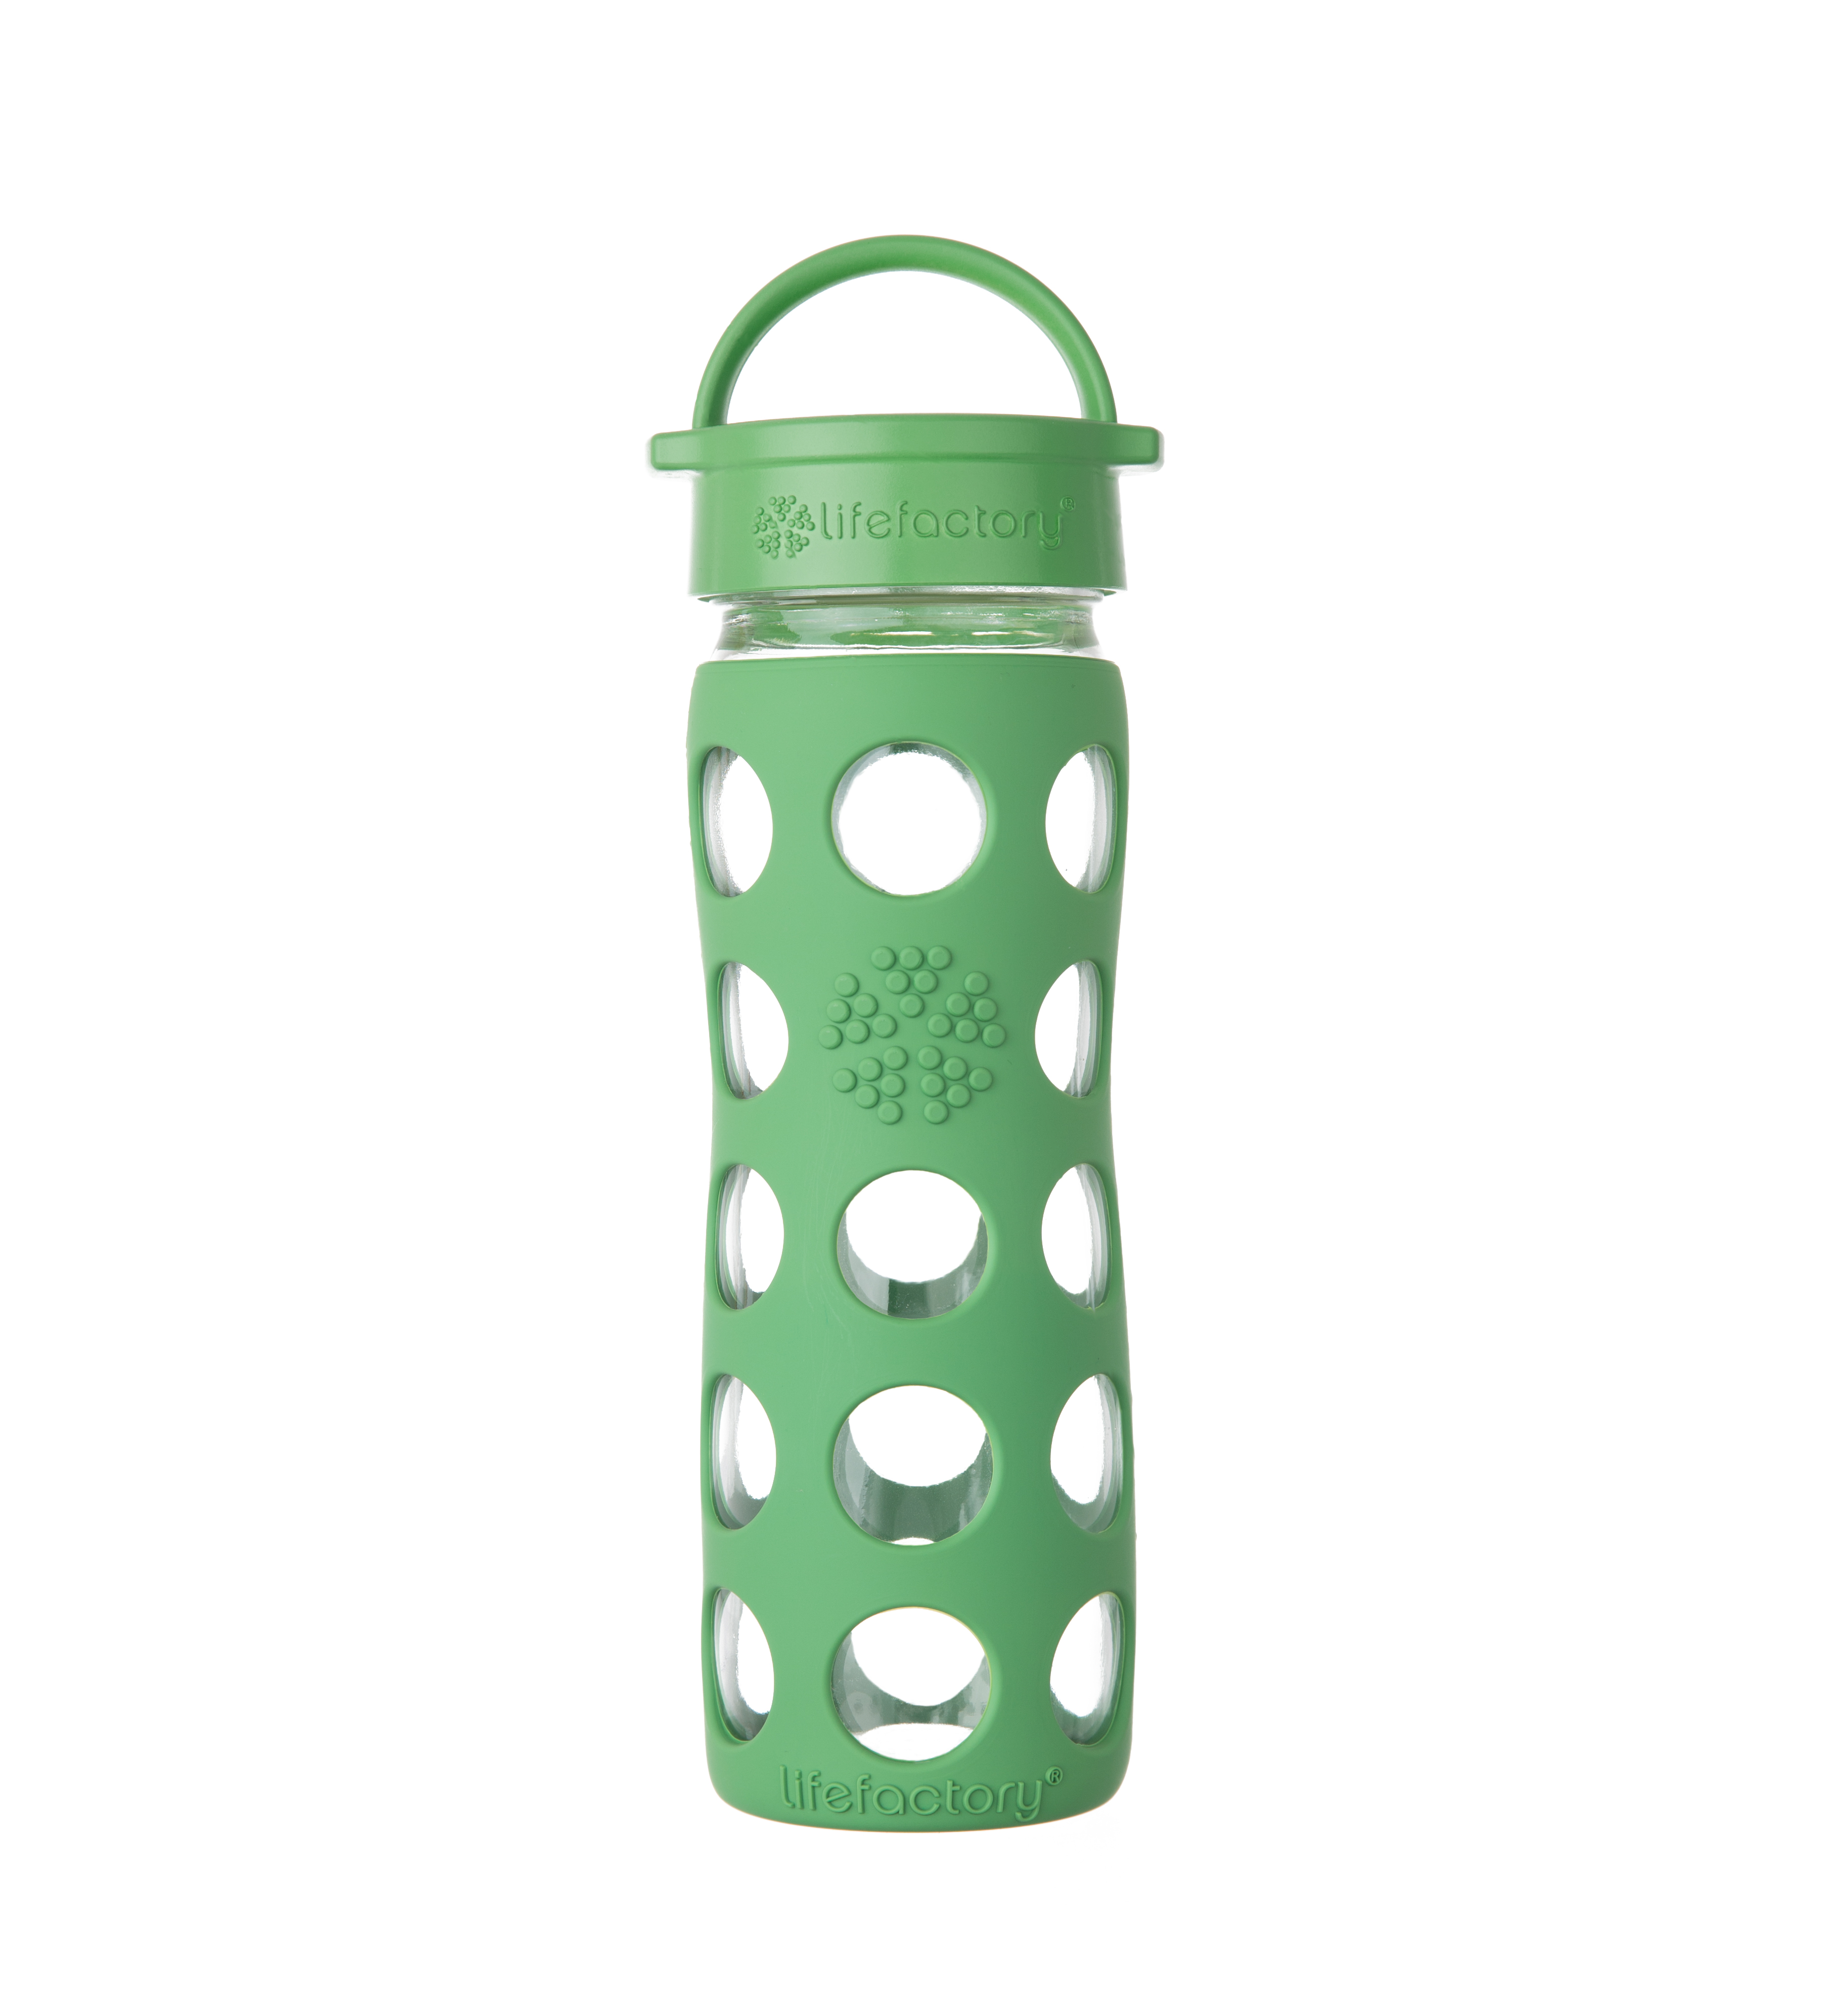 Lifefactory 16 oz Bottle with Classic Cap - Grass Green